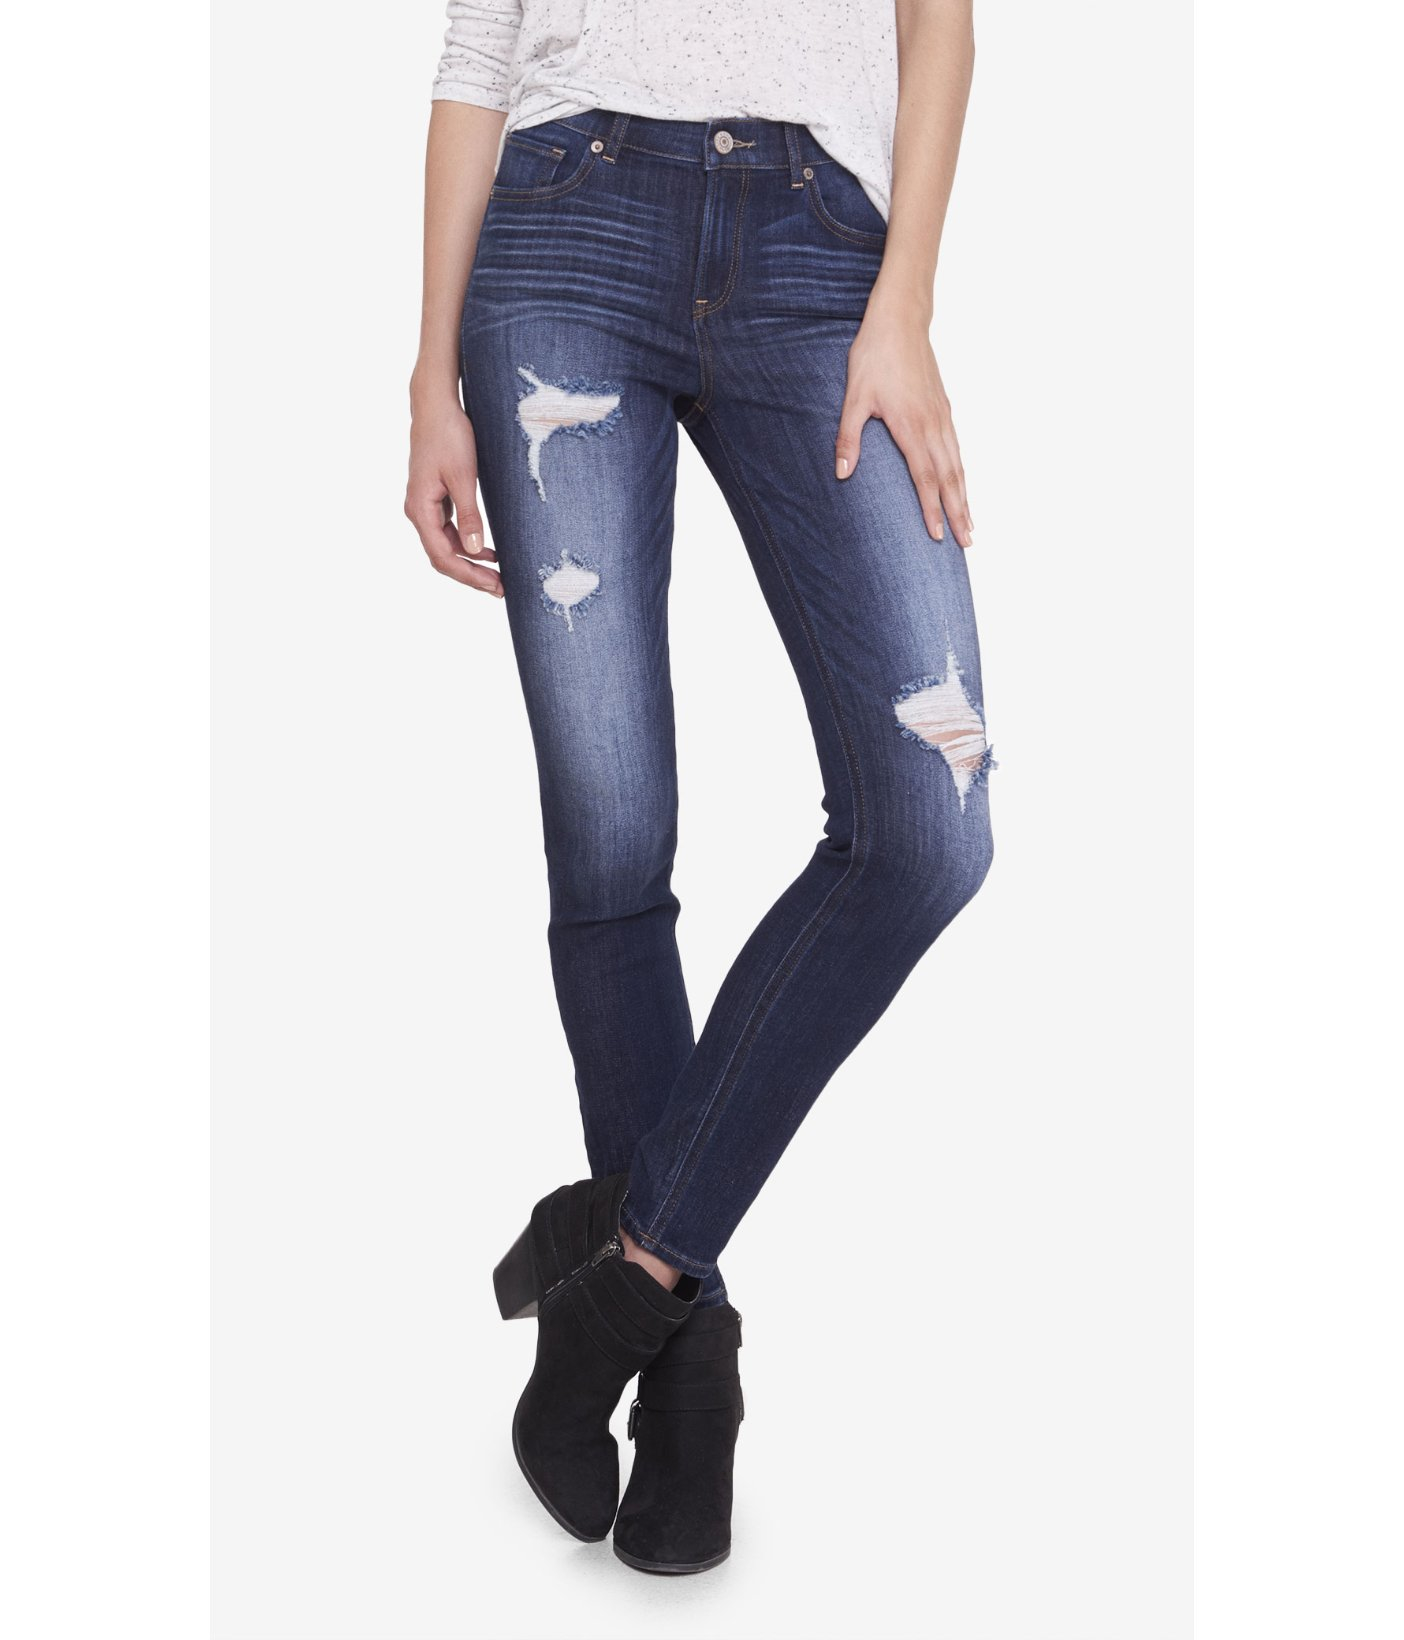 jeans for women, jeans for women plus size, jeans for women high waist, jeans for women bootcut, jeans for women levis skinny jeans red men CLICK VISIT link for more details If you're doing ripped jeans this is the pier for you.